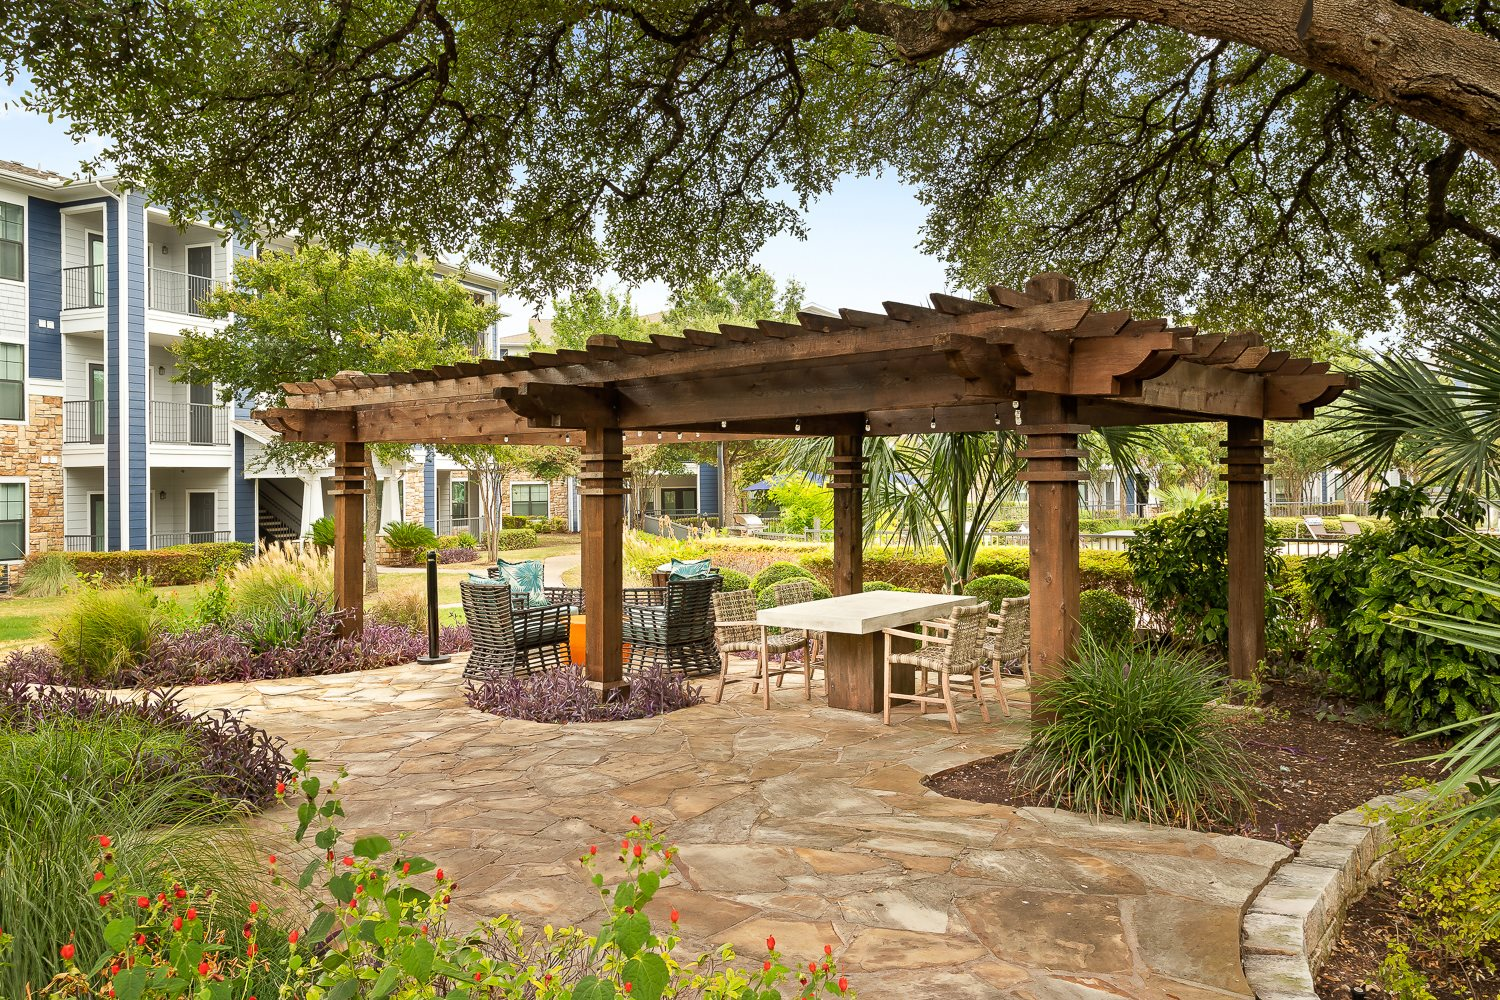 Covered Picnic and Grilling Area